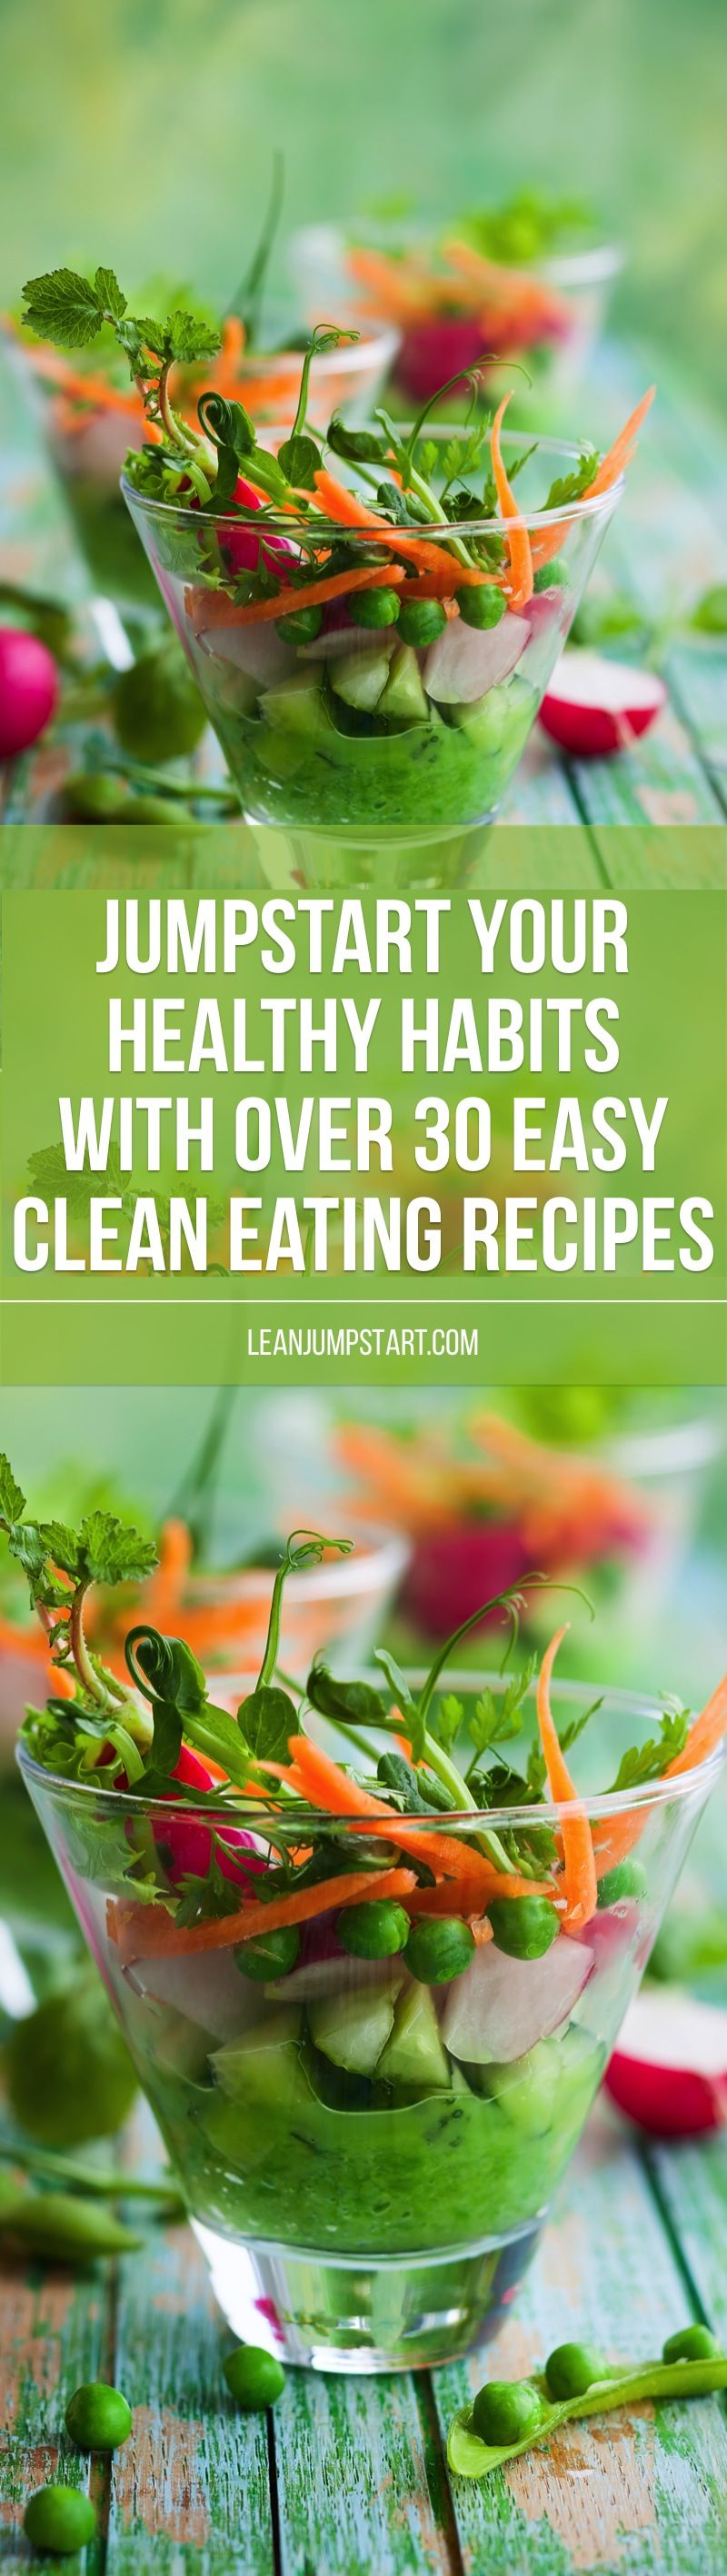 Clean eating recipes: Over 100 easy, nutrient-dense meals